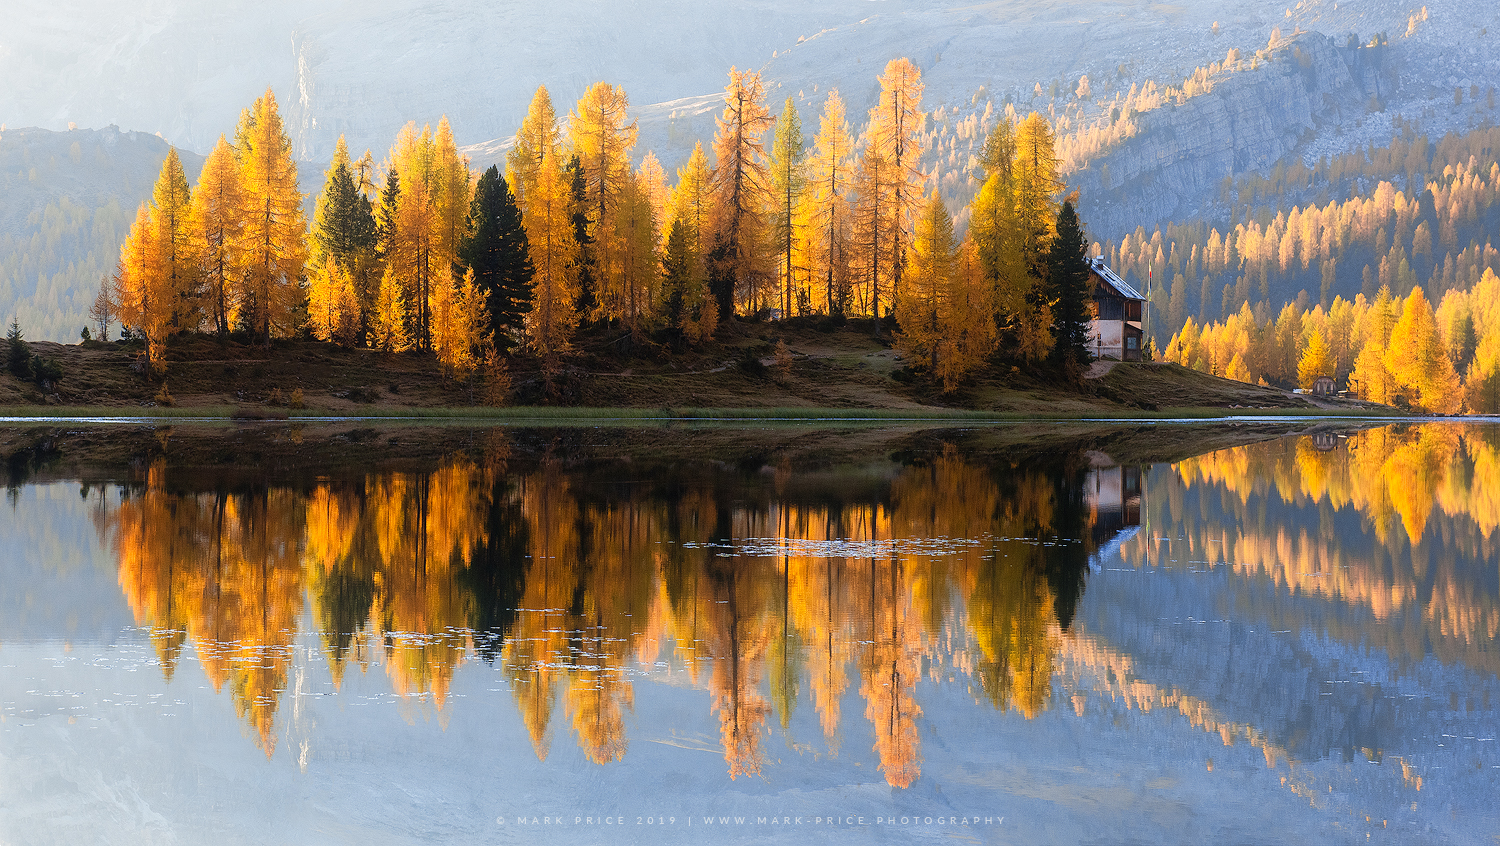 An island of larches lit by the morning sun in the Italian mountains